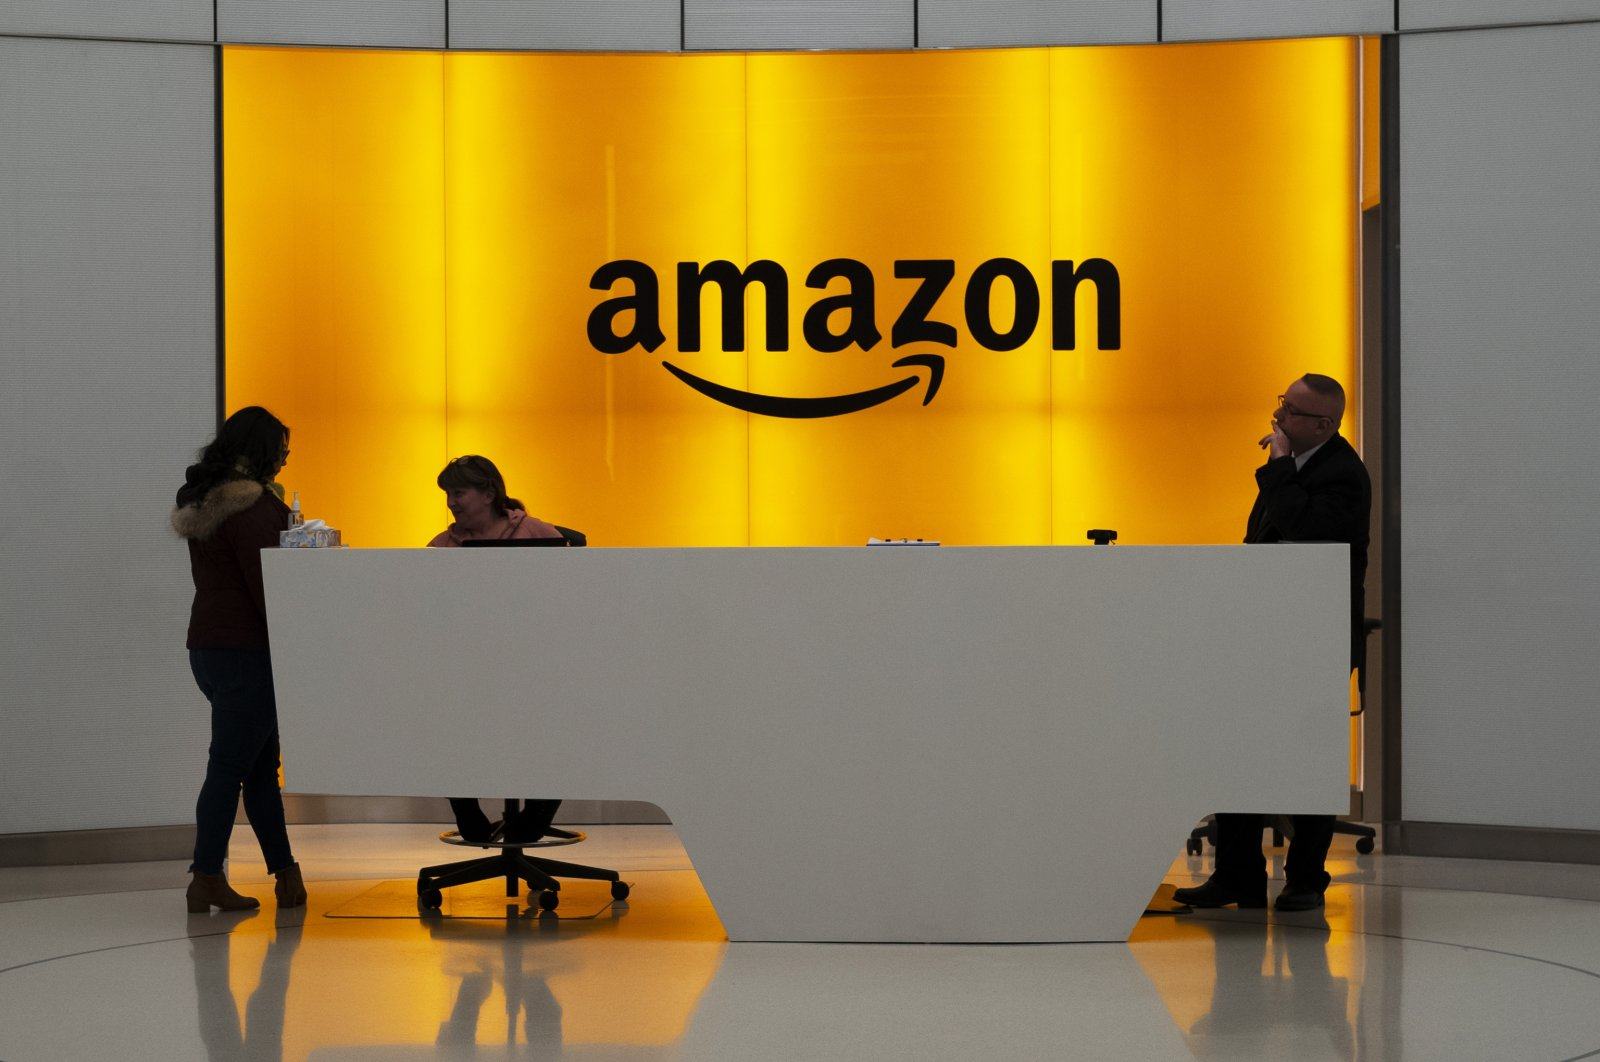 People stand in the lobby for Amazon offices in New York City, New York, U.S., Feb. 14, 2019. (AP Photo/File)